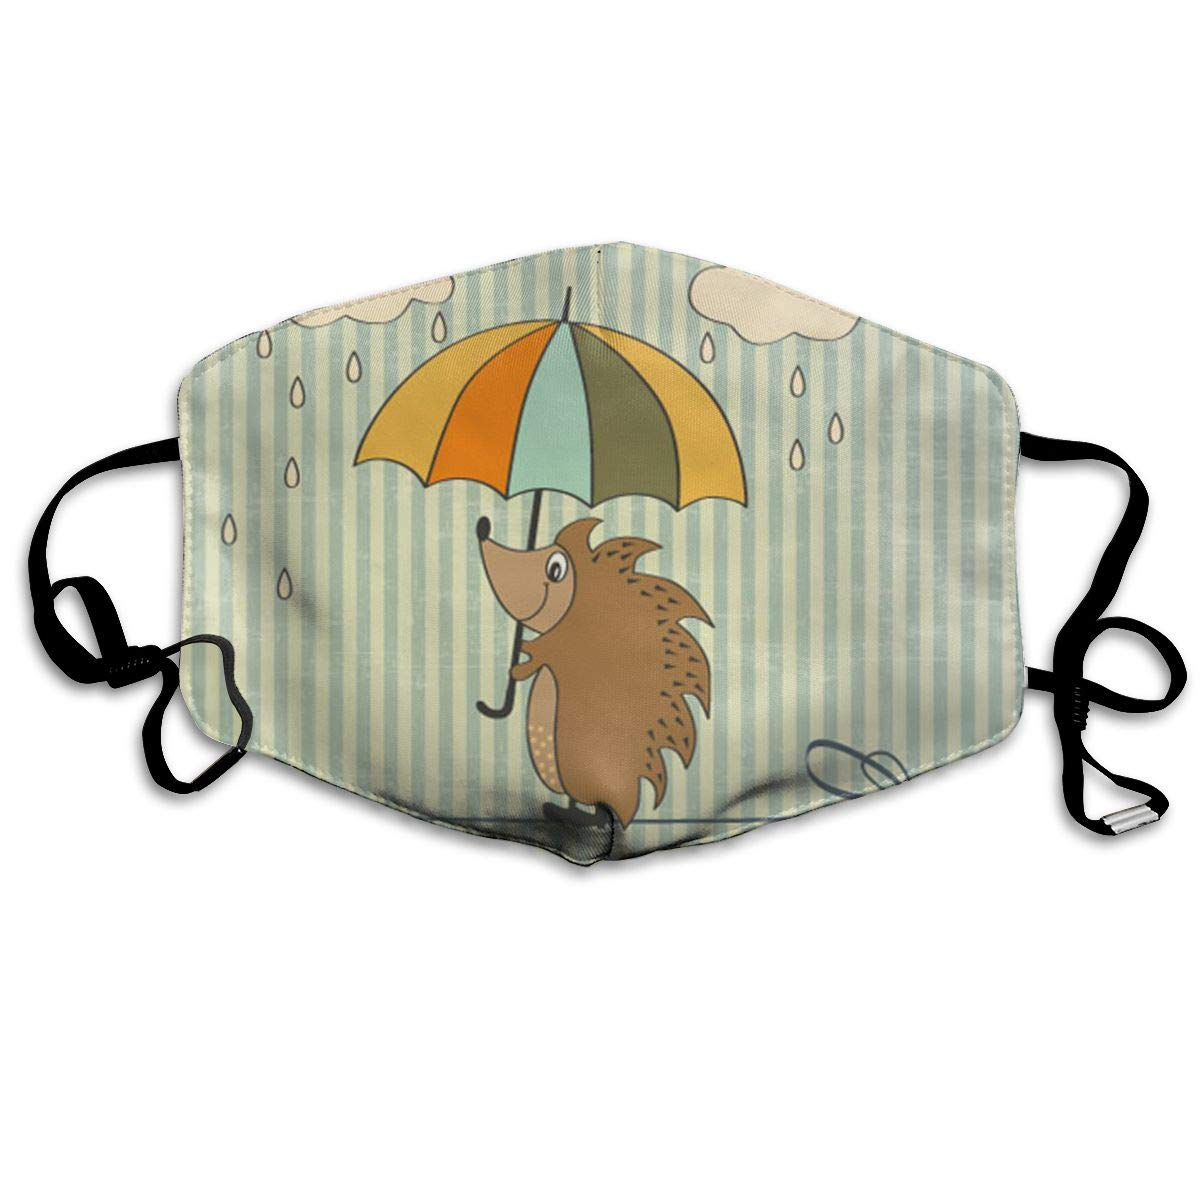 Mouth Mask Hedgehog With Umbrella Print Masks - Breathable Adjustable Windproof Mouth-Muffle, Camping Running For Women And Men